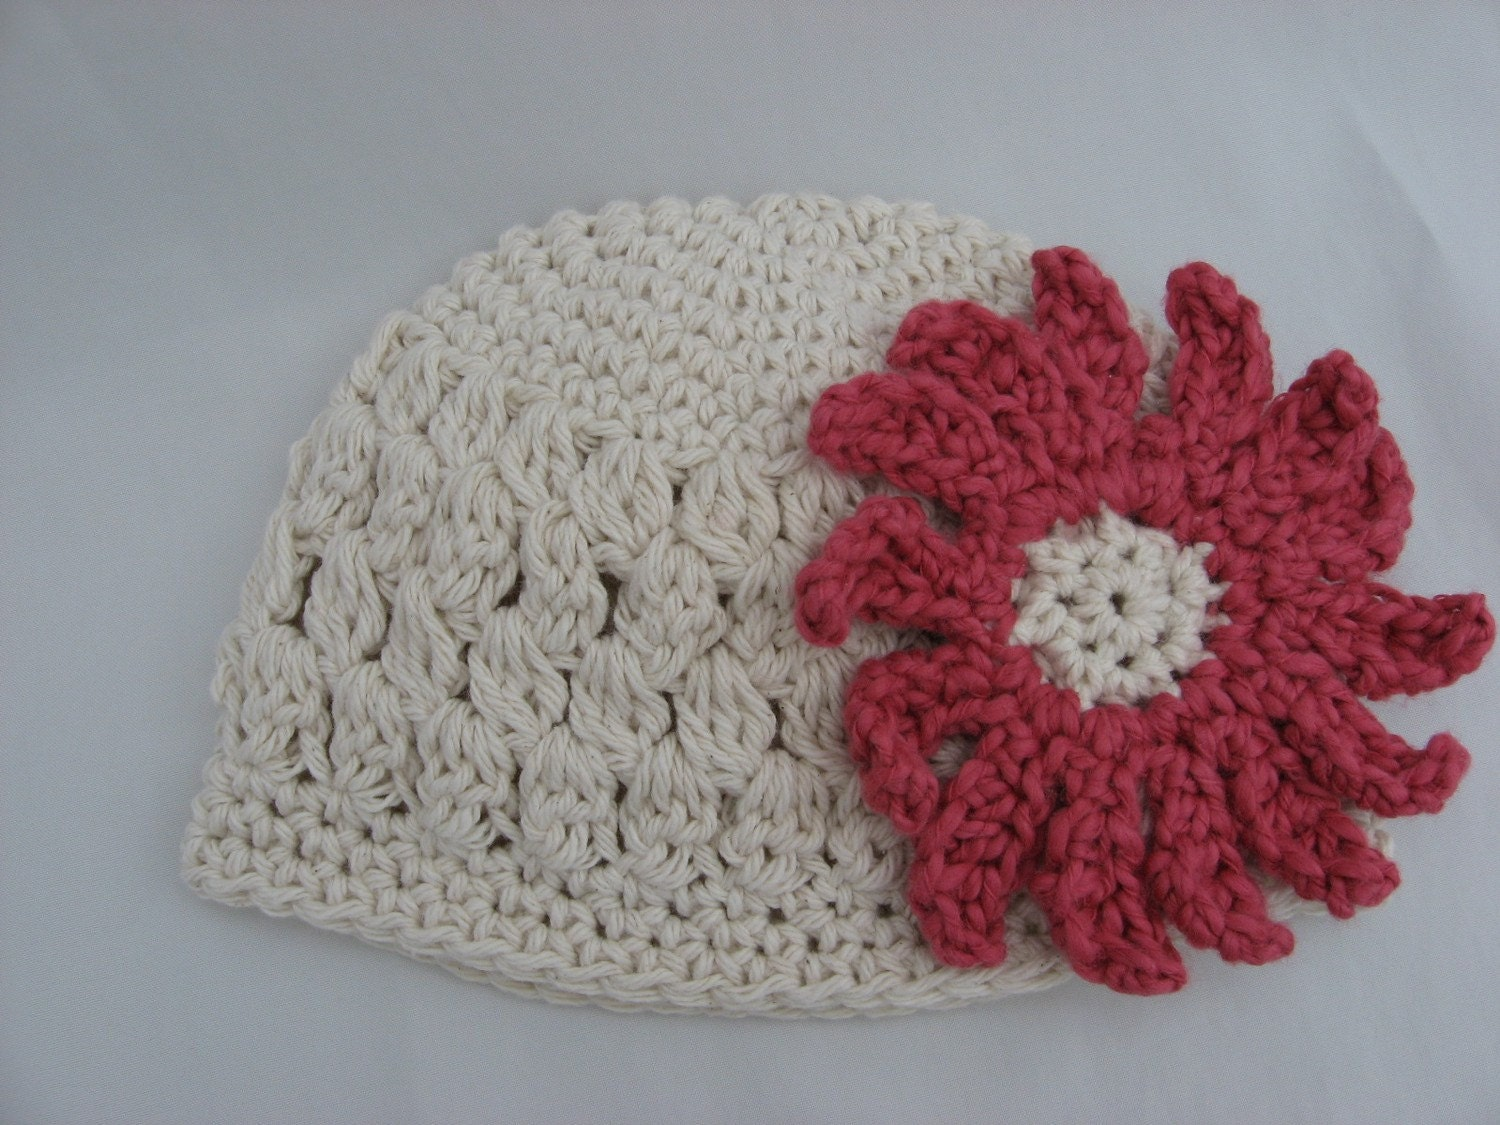 Crochet Flower Puff Pattern : Openweave Puff Stitch Beanie Crochet Pattern Pdf with Two